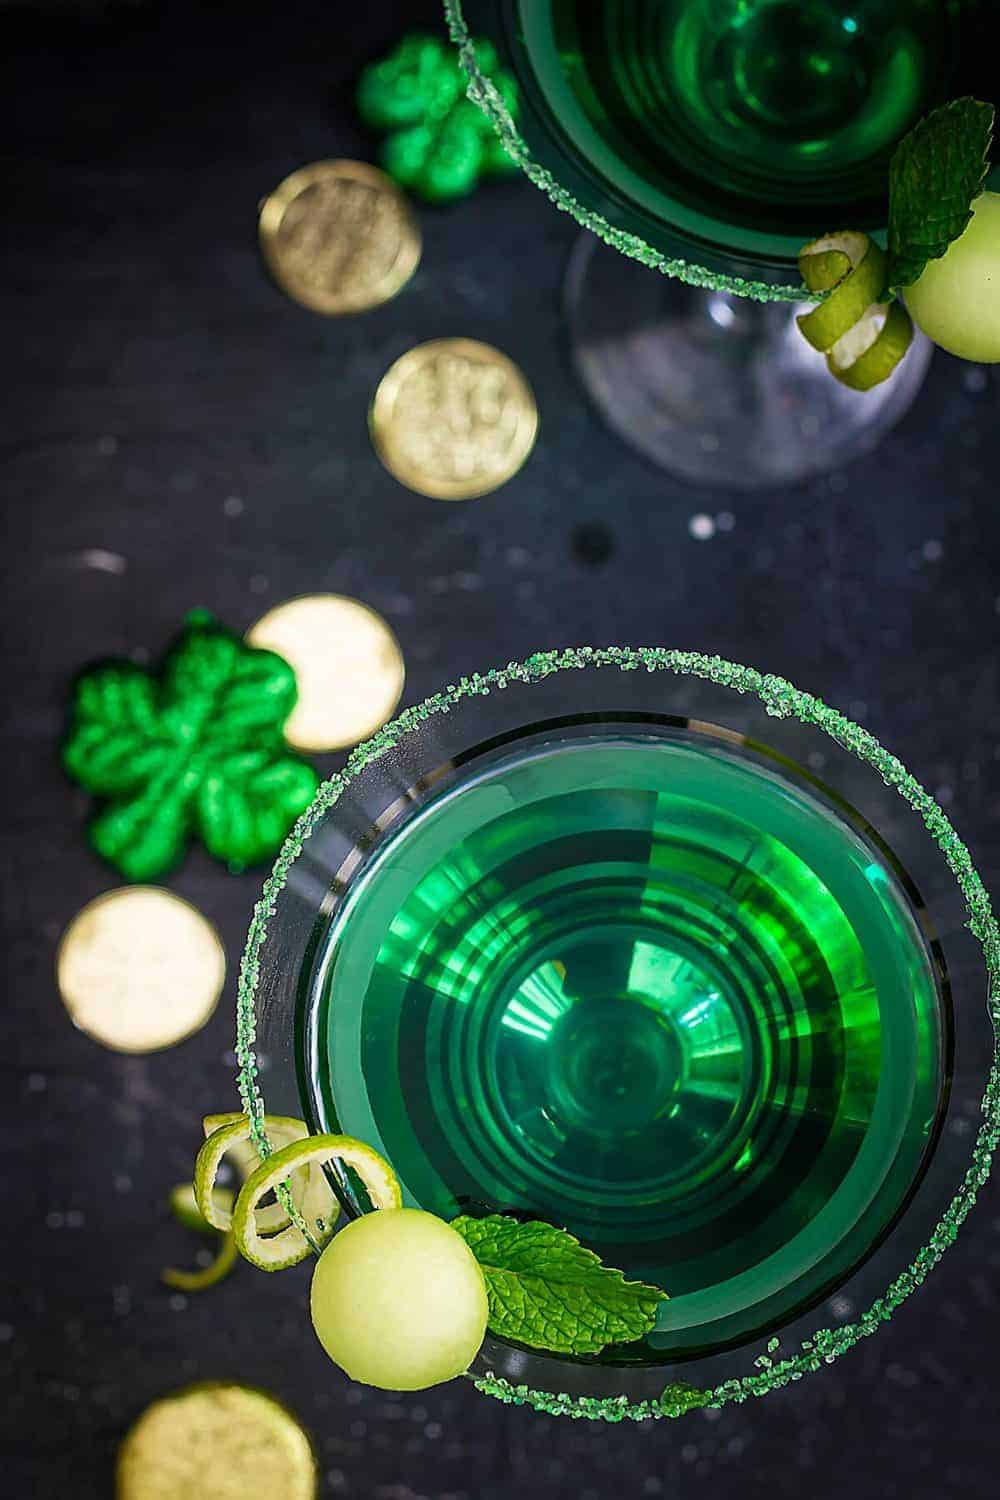 An overhead view of two glasses with melontini drink on a black table with St. Patrick's Day decorations.